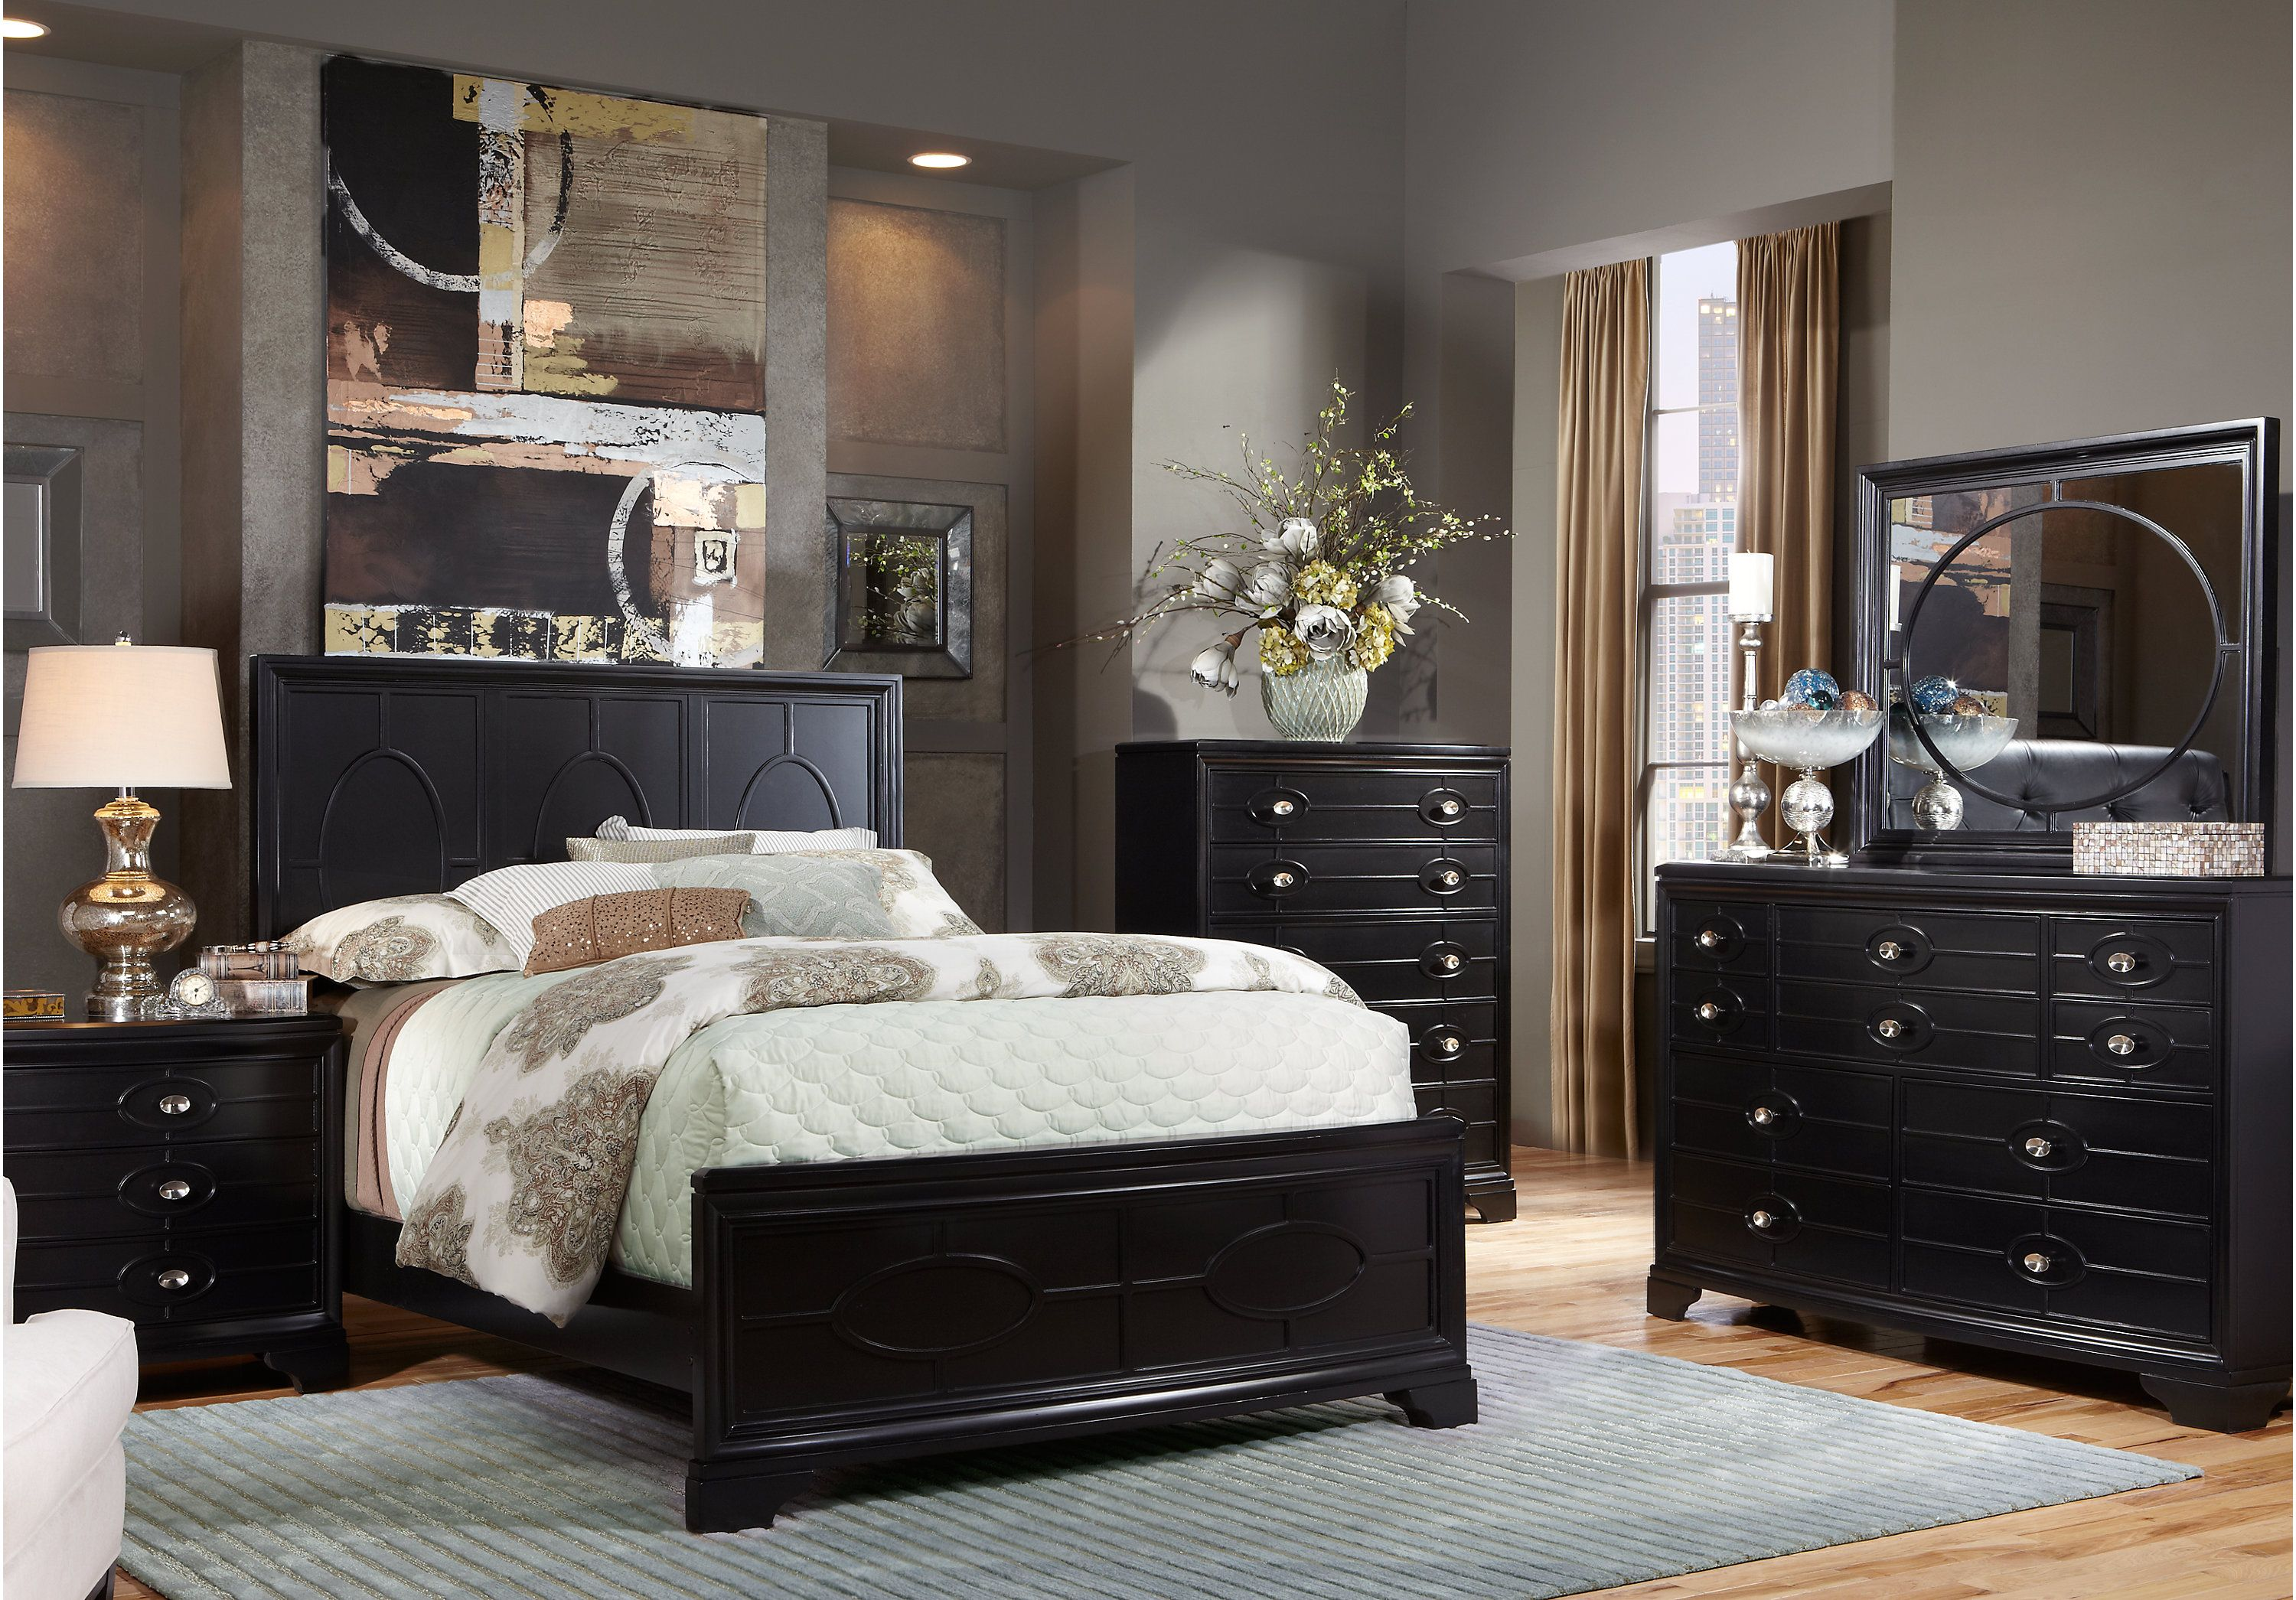 Picture of cindy crawford westport place king black 5pc panel bedroom from king bedroom sets furniture